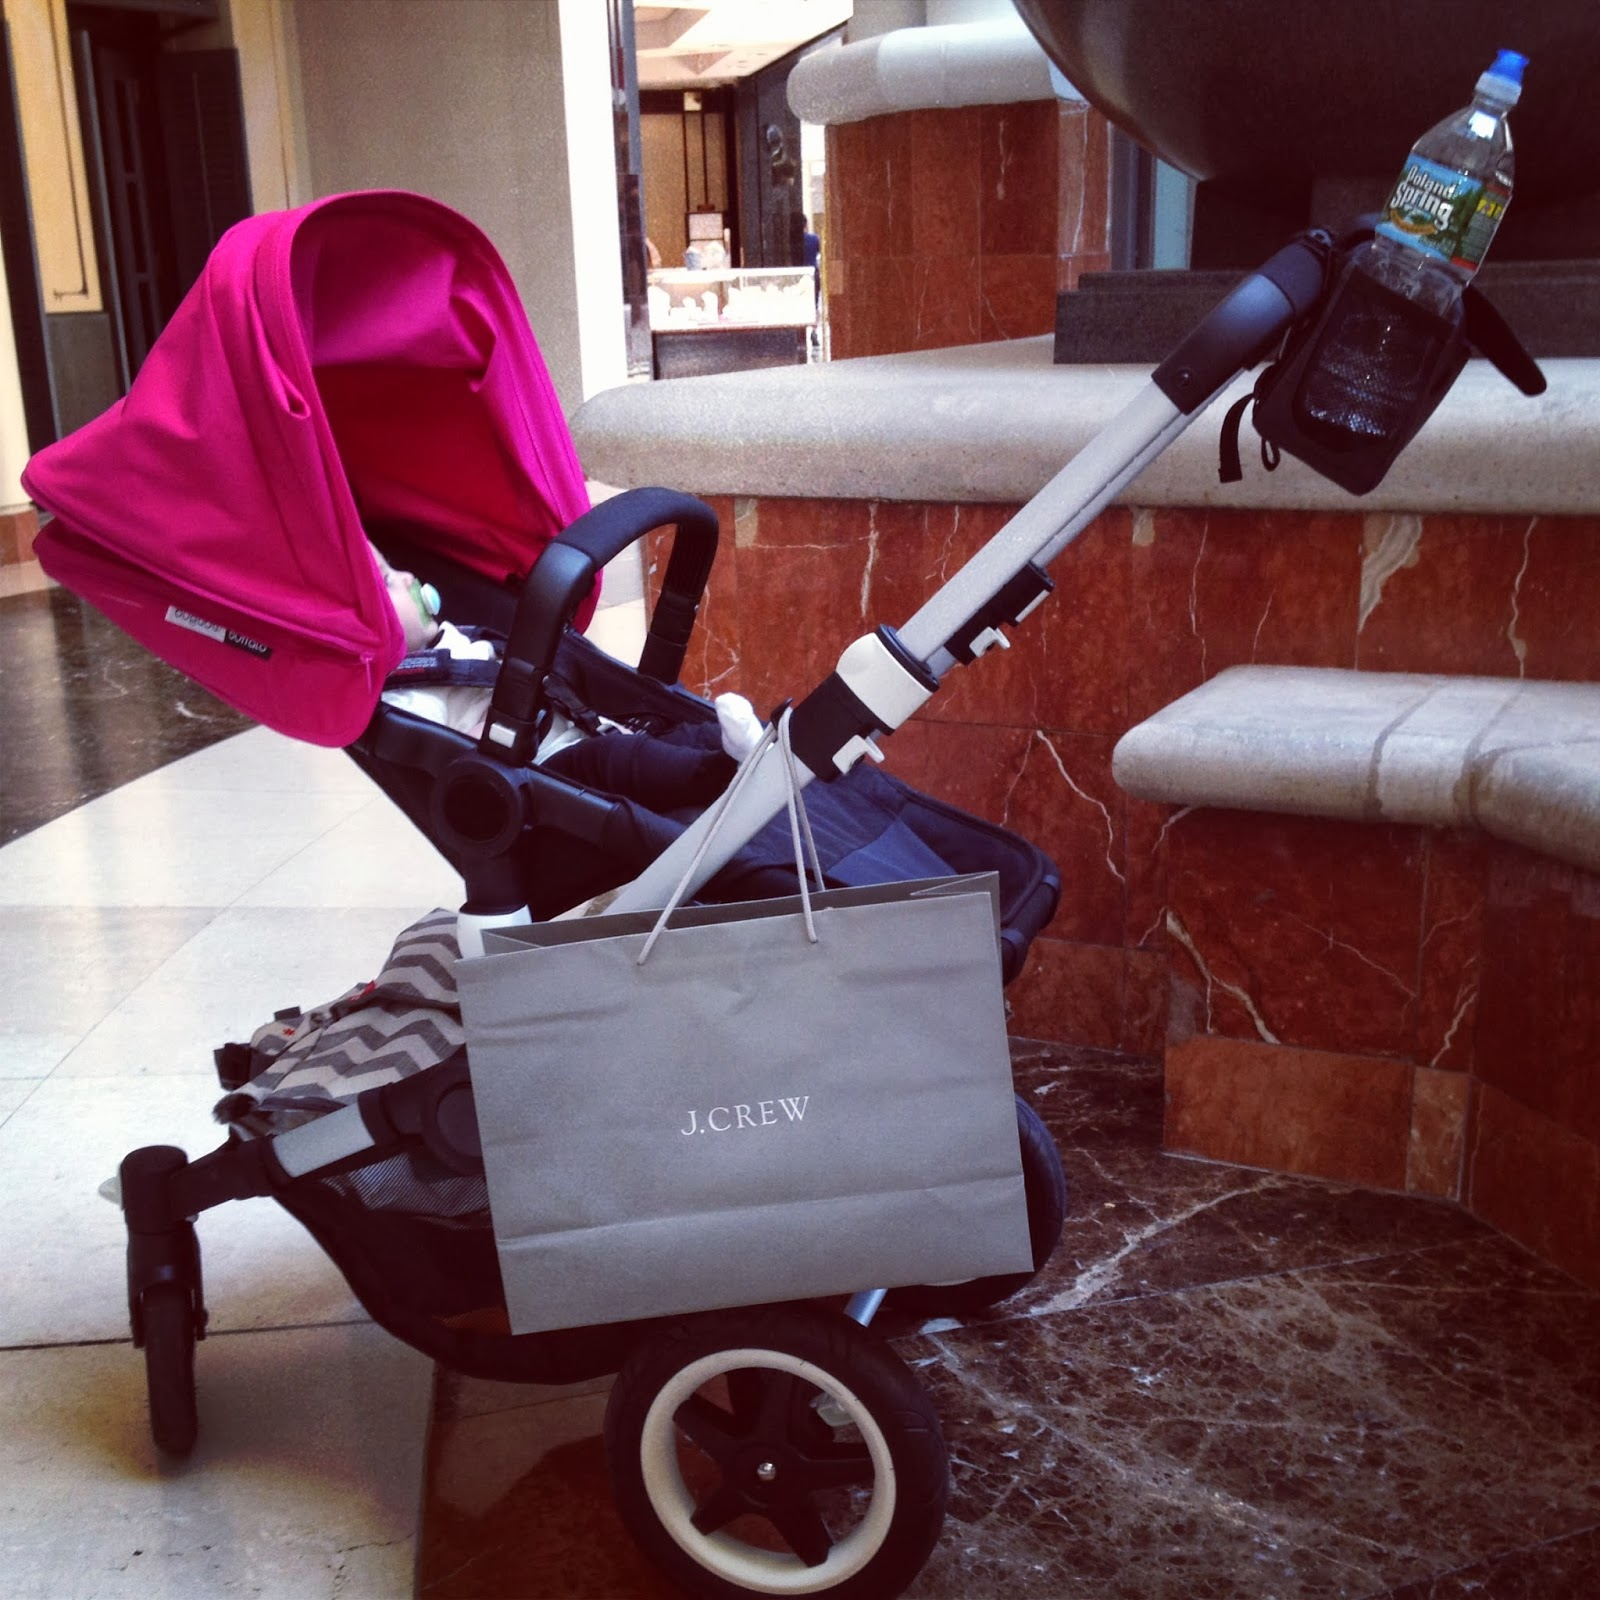 The Buffalo Has A One Piece Self Standing Fold Which Is Great For Storing Stroller It Can Also With Bassinet Attached To Frame